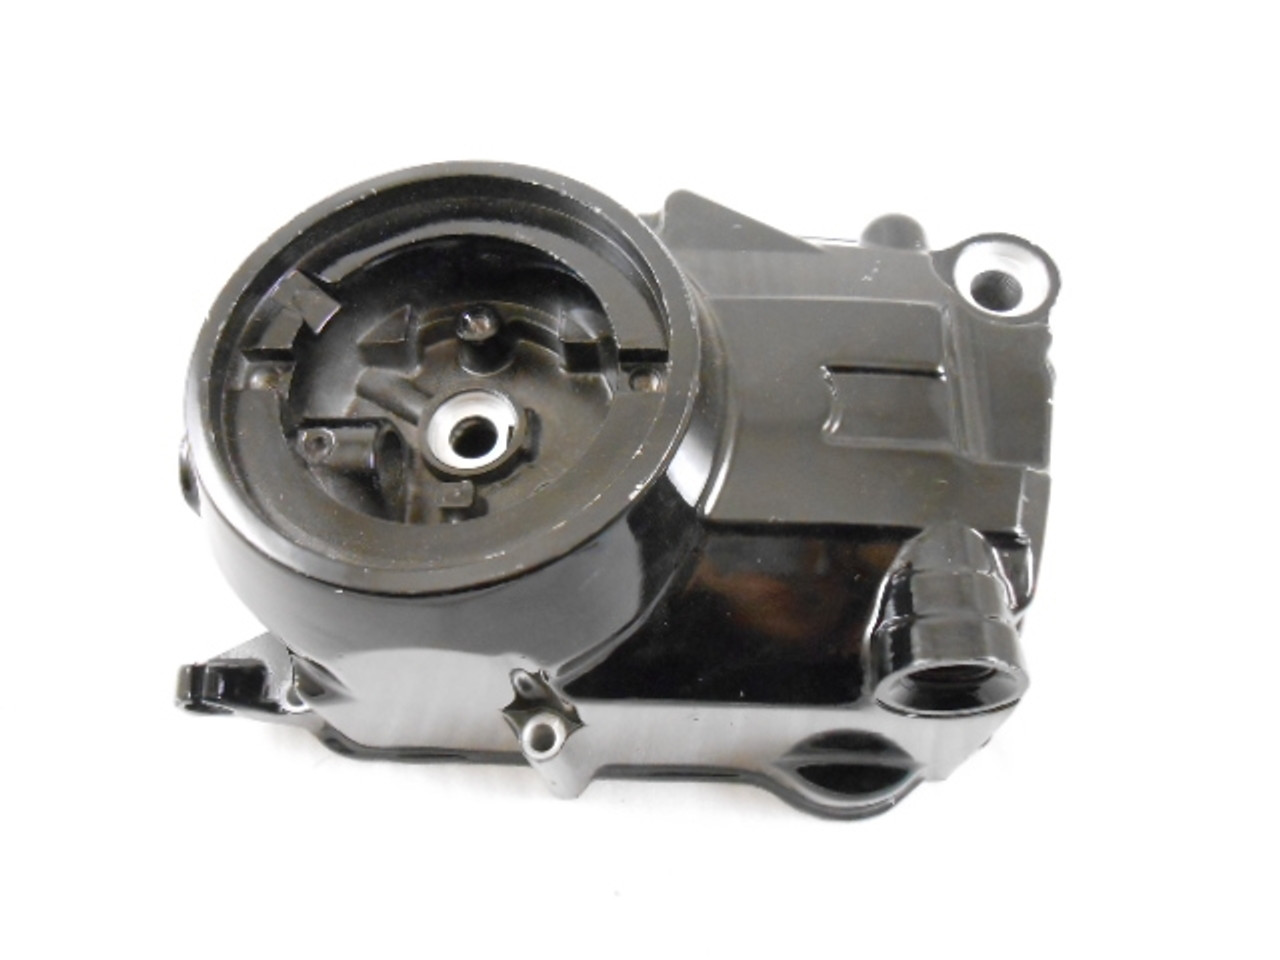 ENGINE COVER /CLUTCH COVER RIGHT SIDE 13874-A216-4